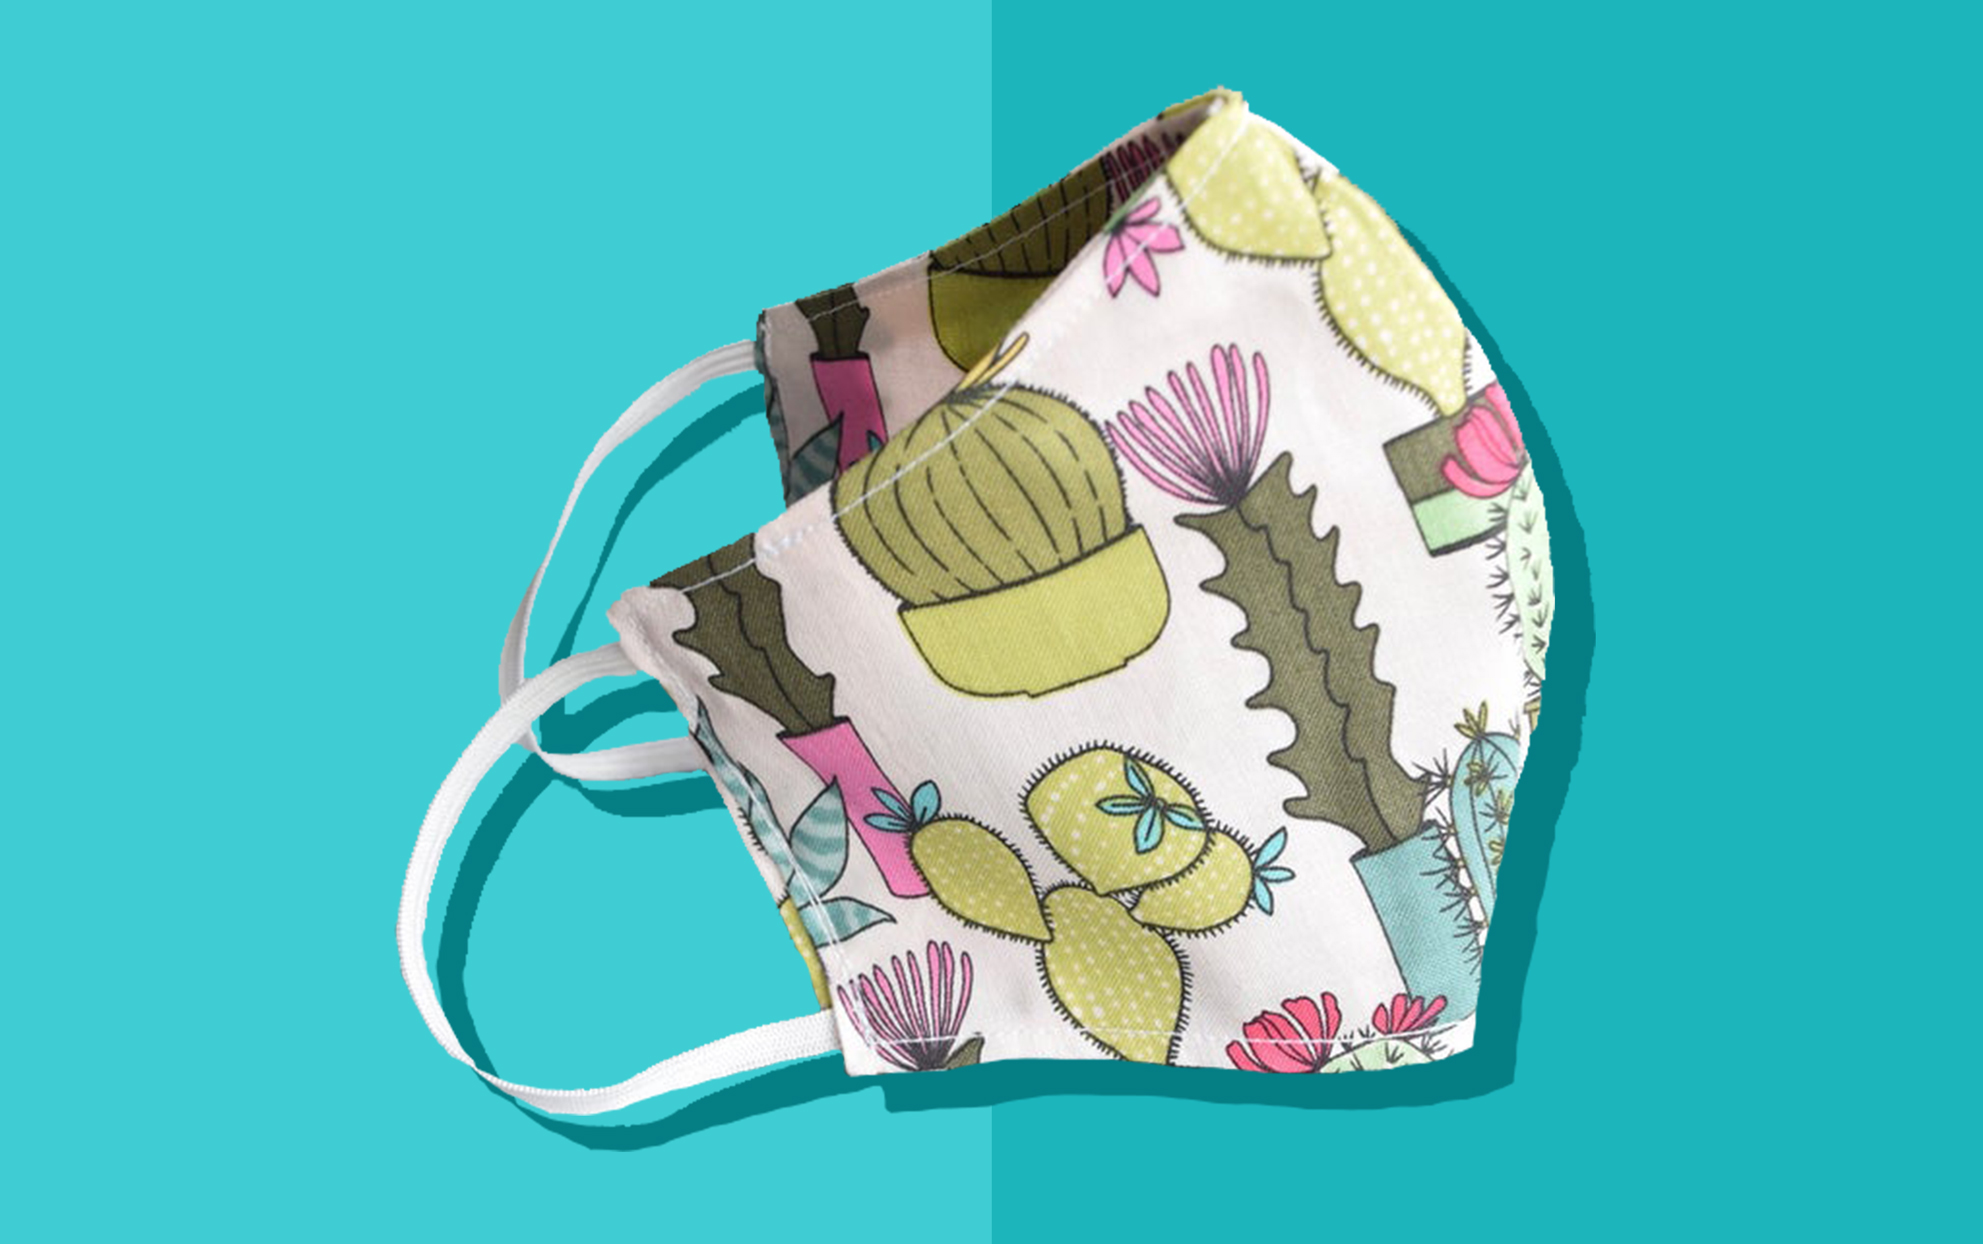 Stylish face mask made out of printed succulents material on a teal background